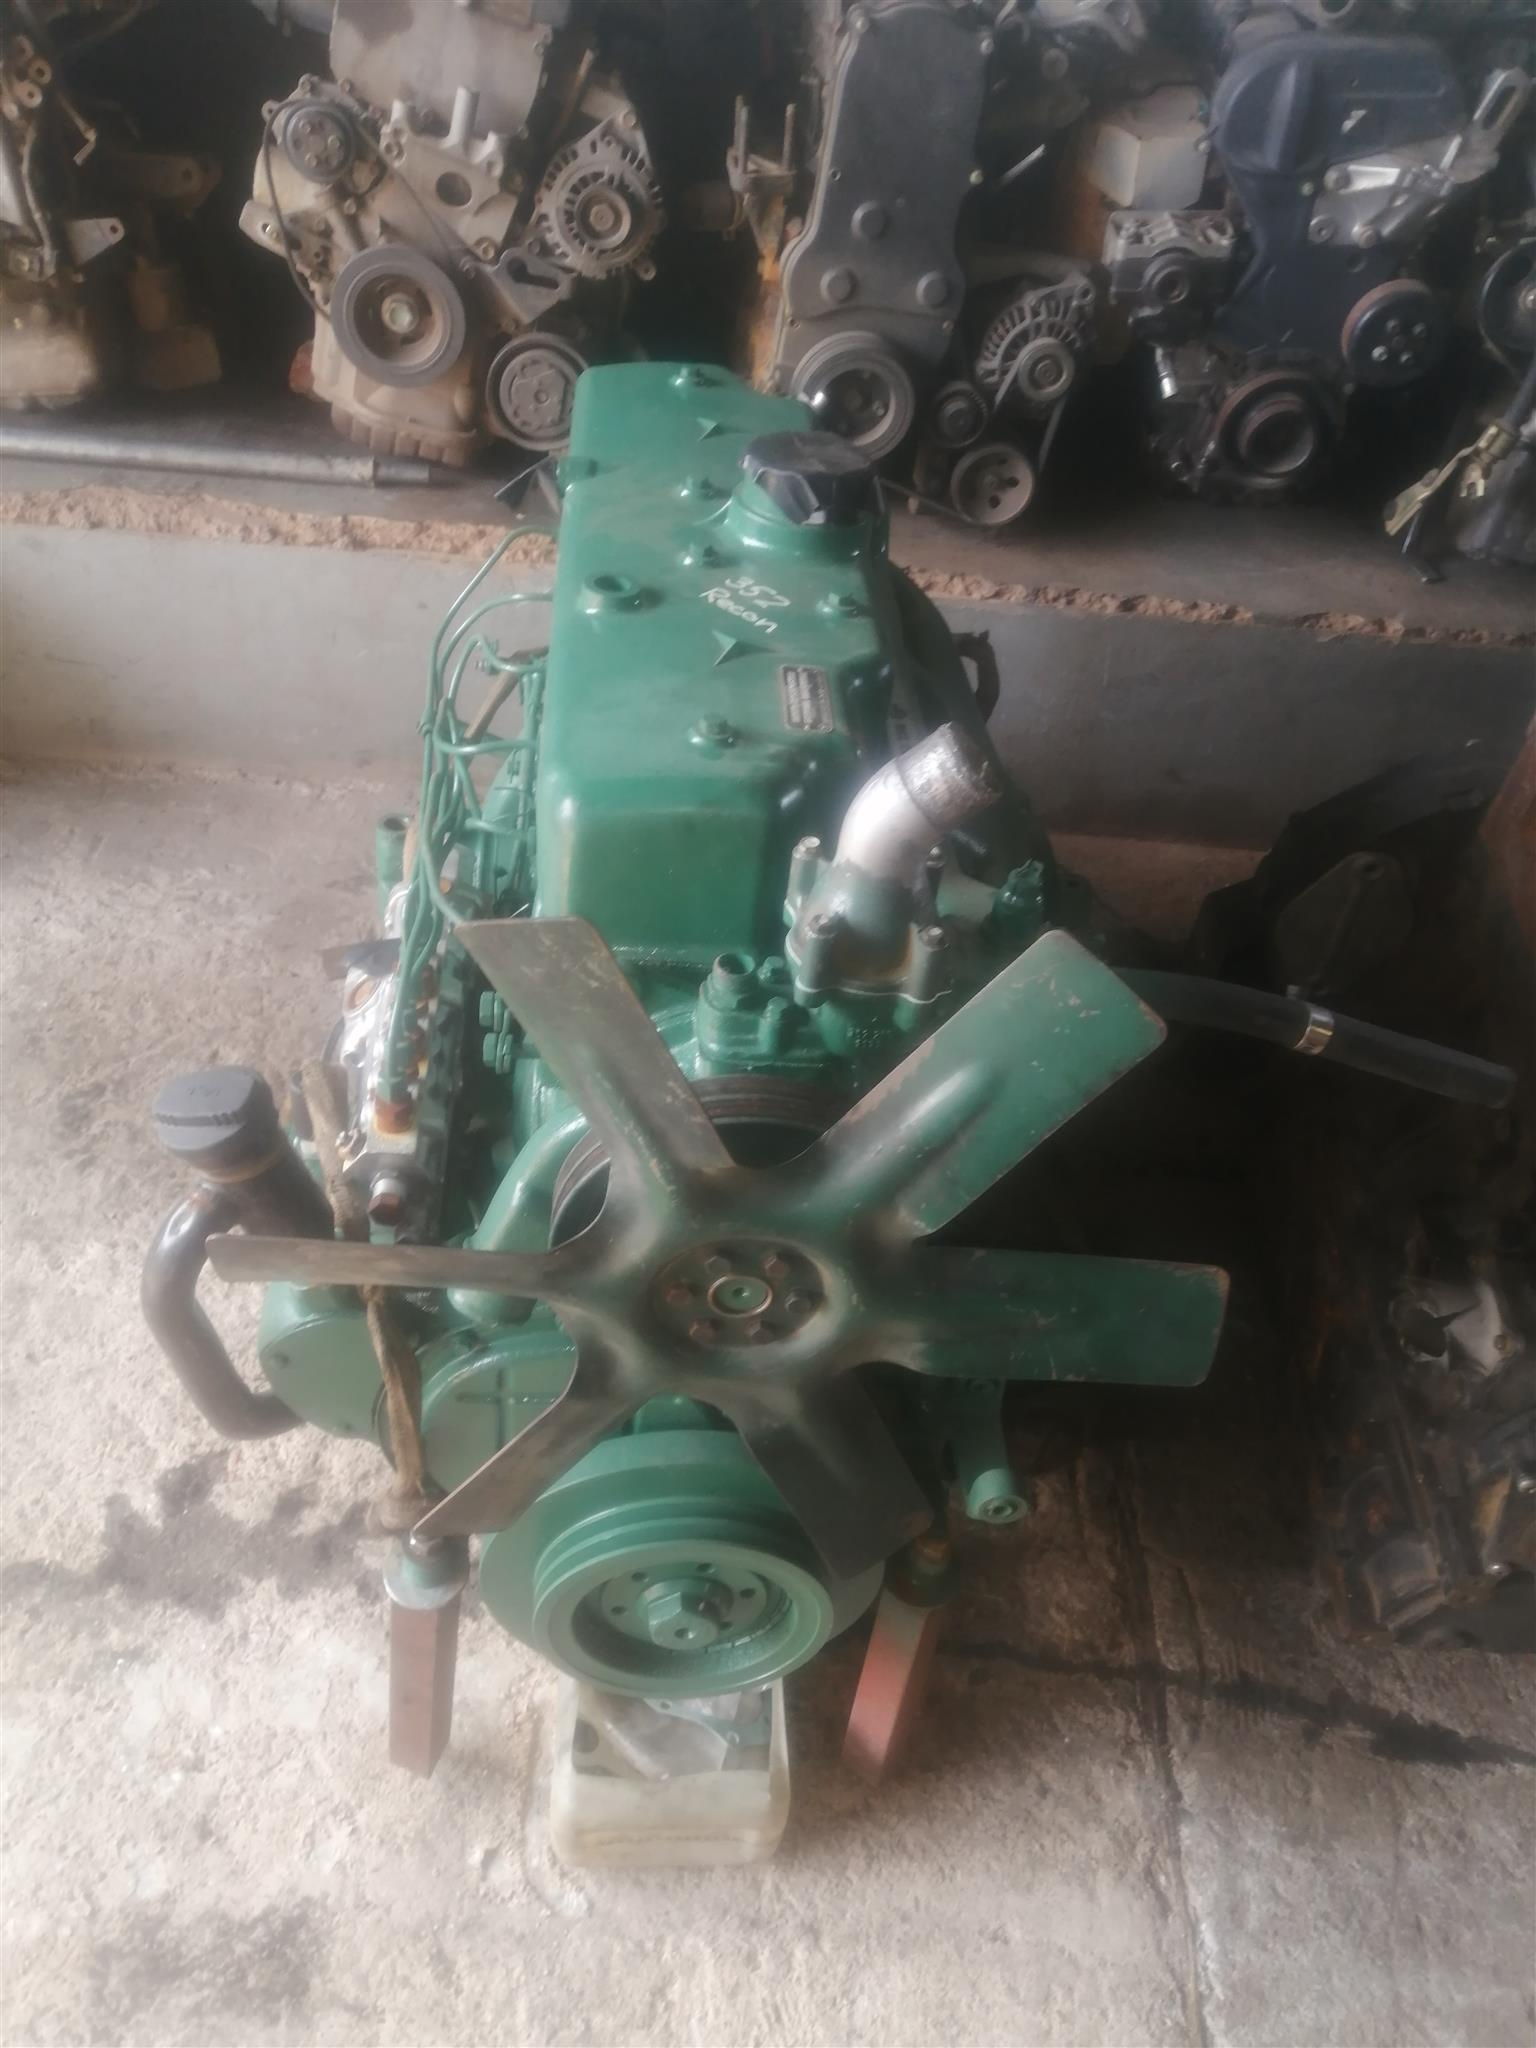 Selling ADE 352 non turbo engine